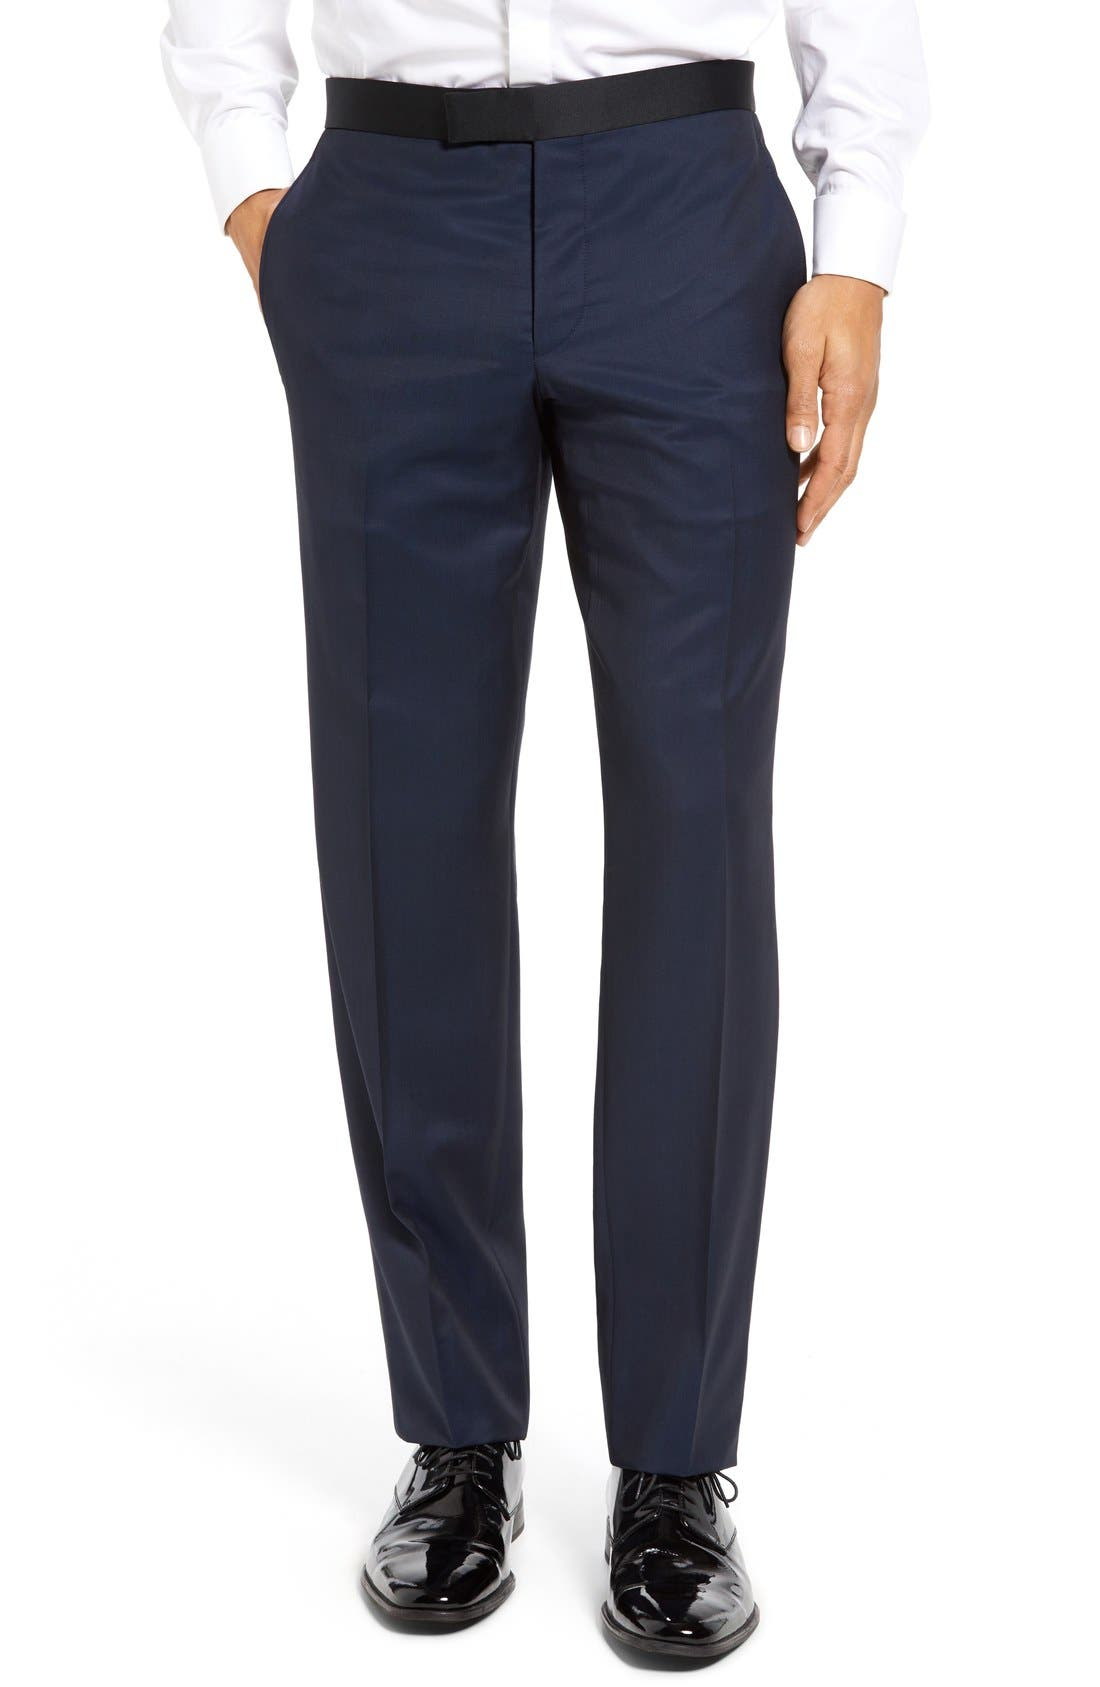 TED BAKER LONDON, Josh Trim Fit Navy Shawl Lapel Tuxedo, Alternate thumbnail 8, color, NAVY BLUE